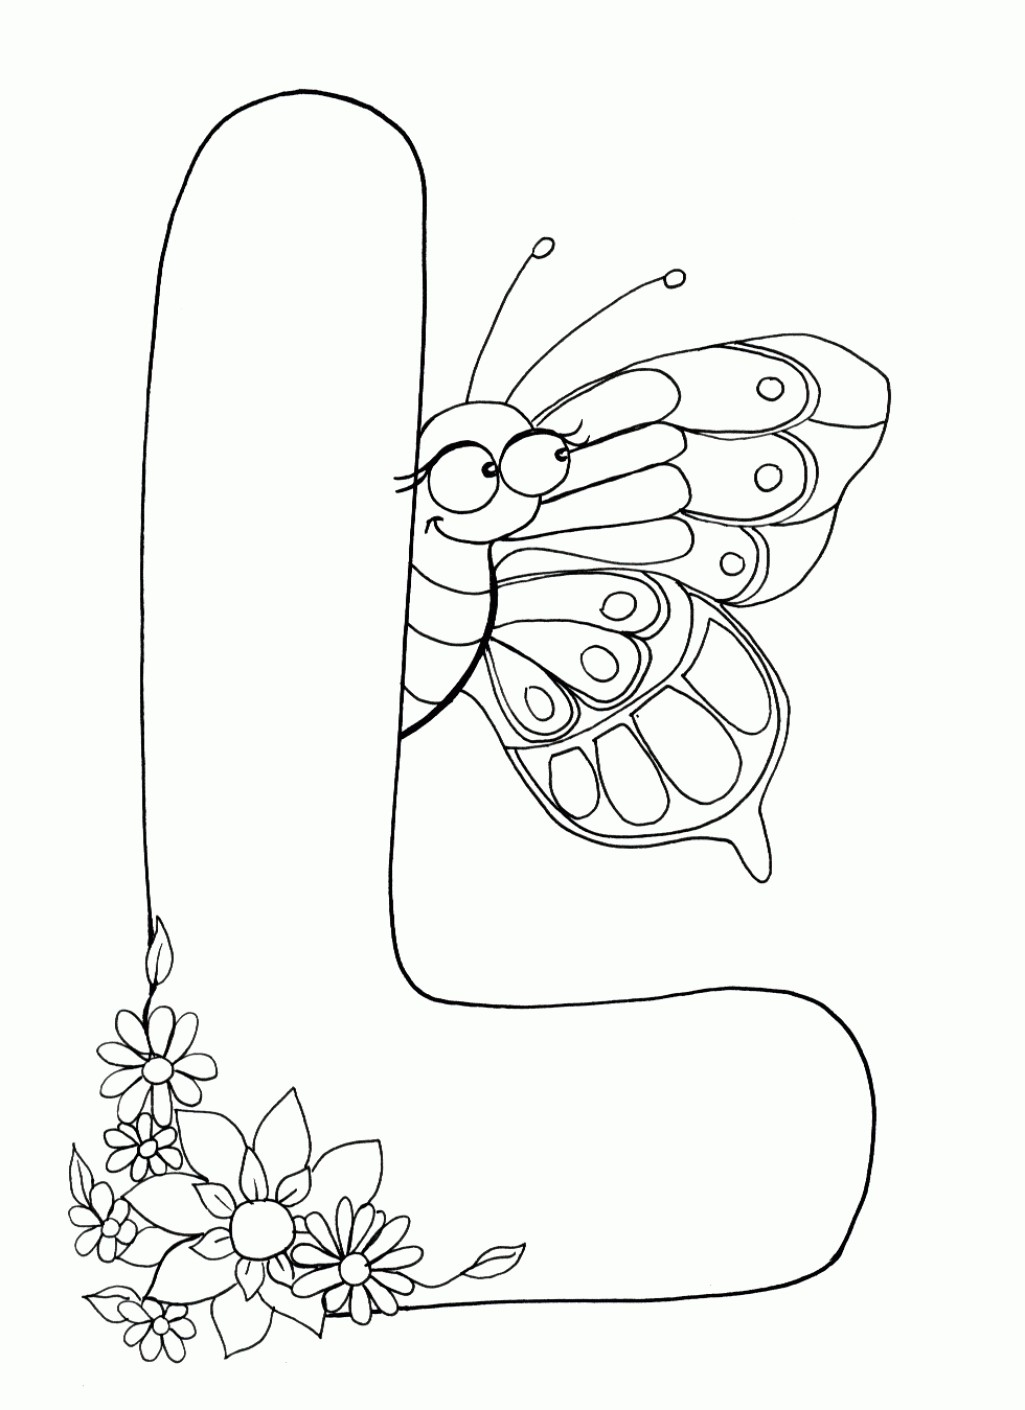 1025x1410 Free Coloring Pages Letter A Fresh Free Coloring Pages Letter L